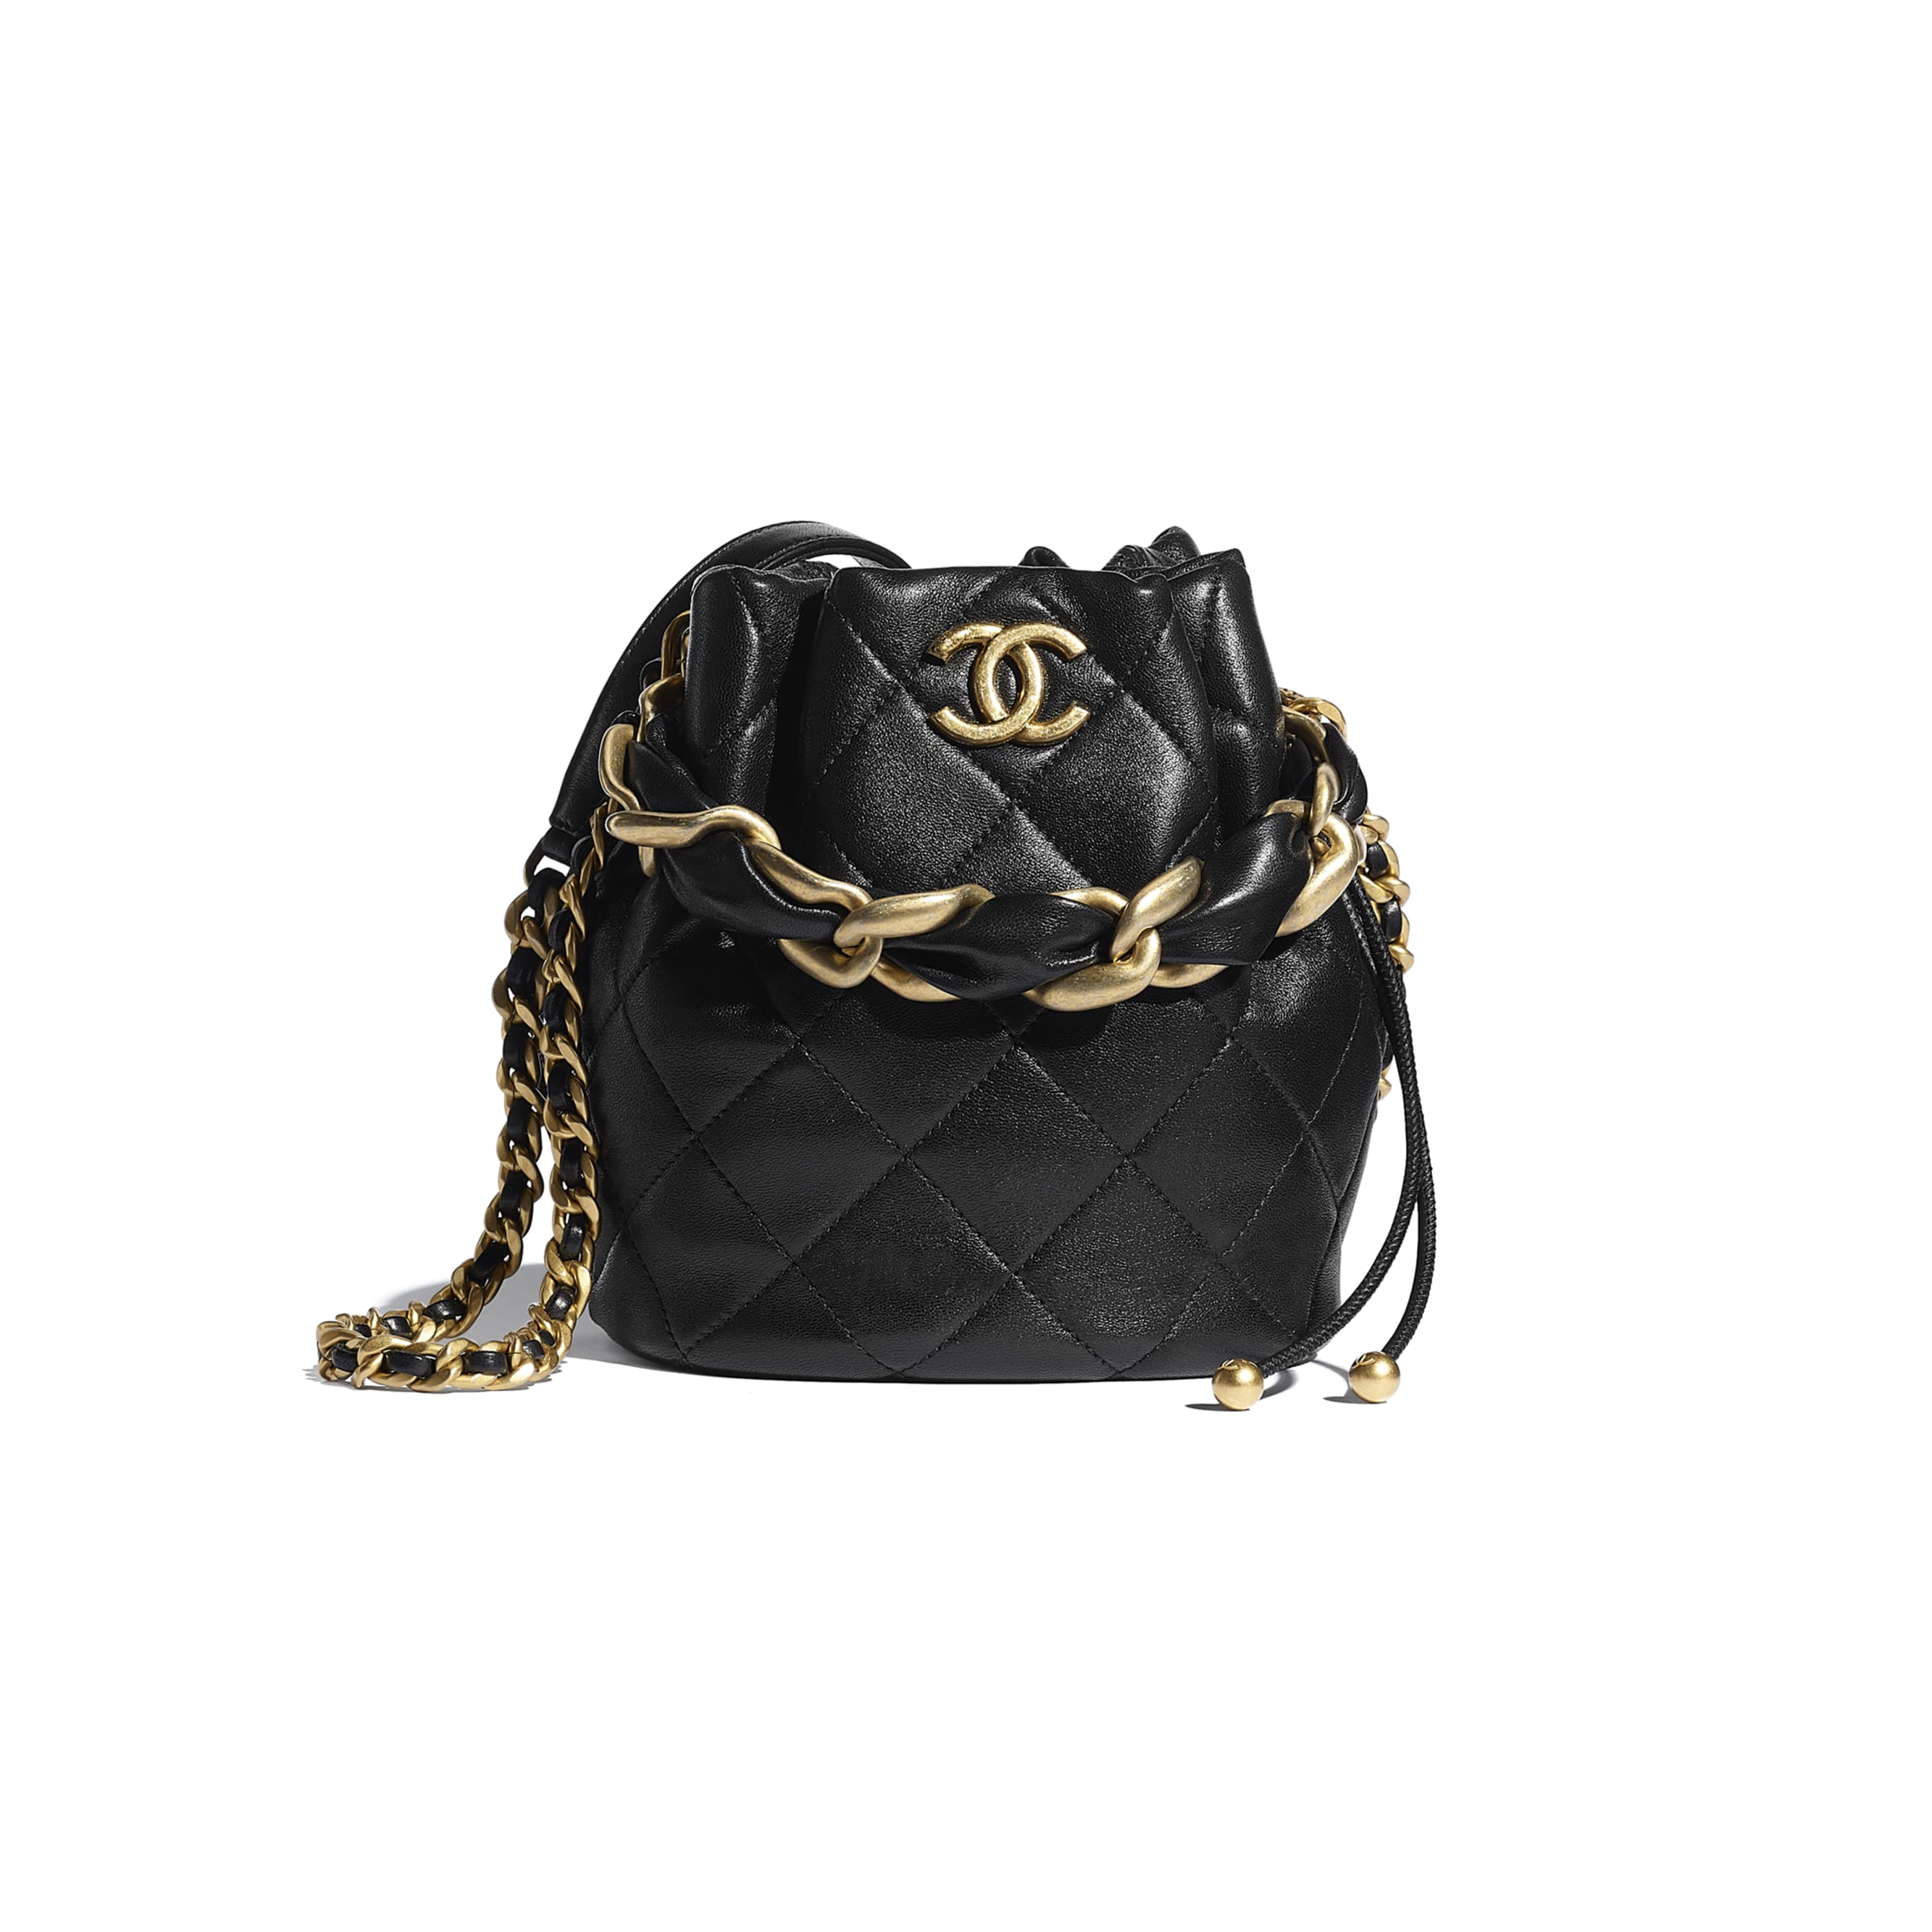 Drawstring Bag - Black - Shiny Lambskin & Gold-Tone Metal - CHANEL - Default view - see standard sized version